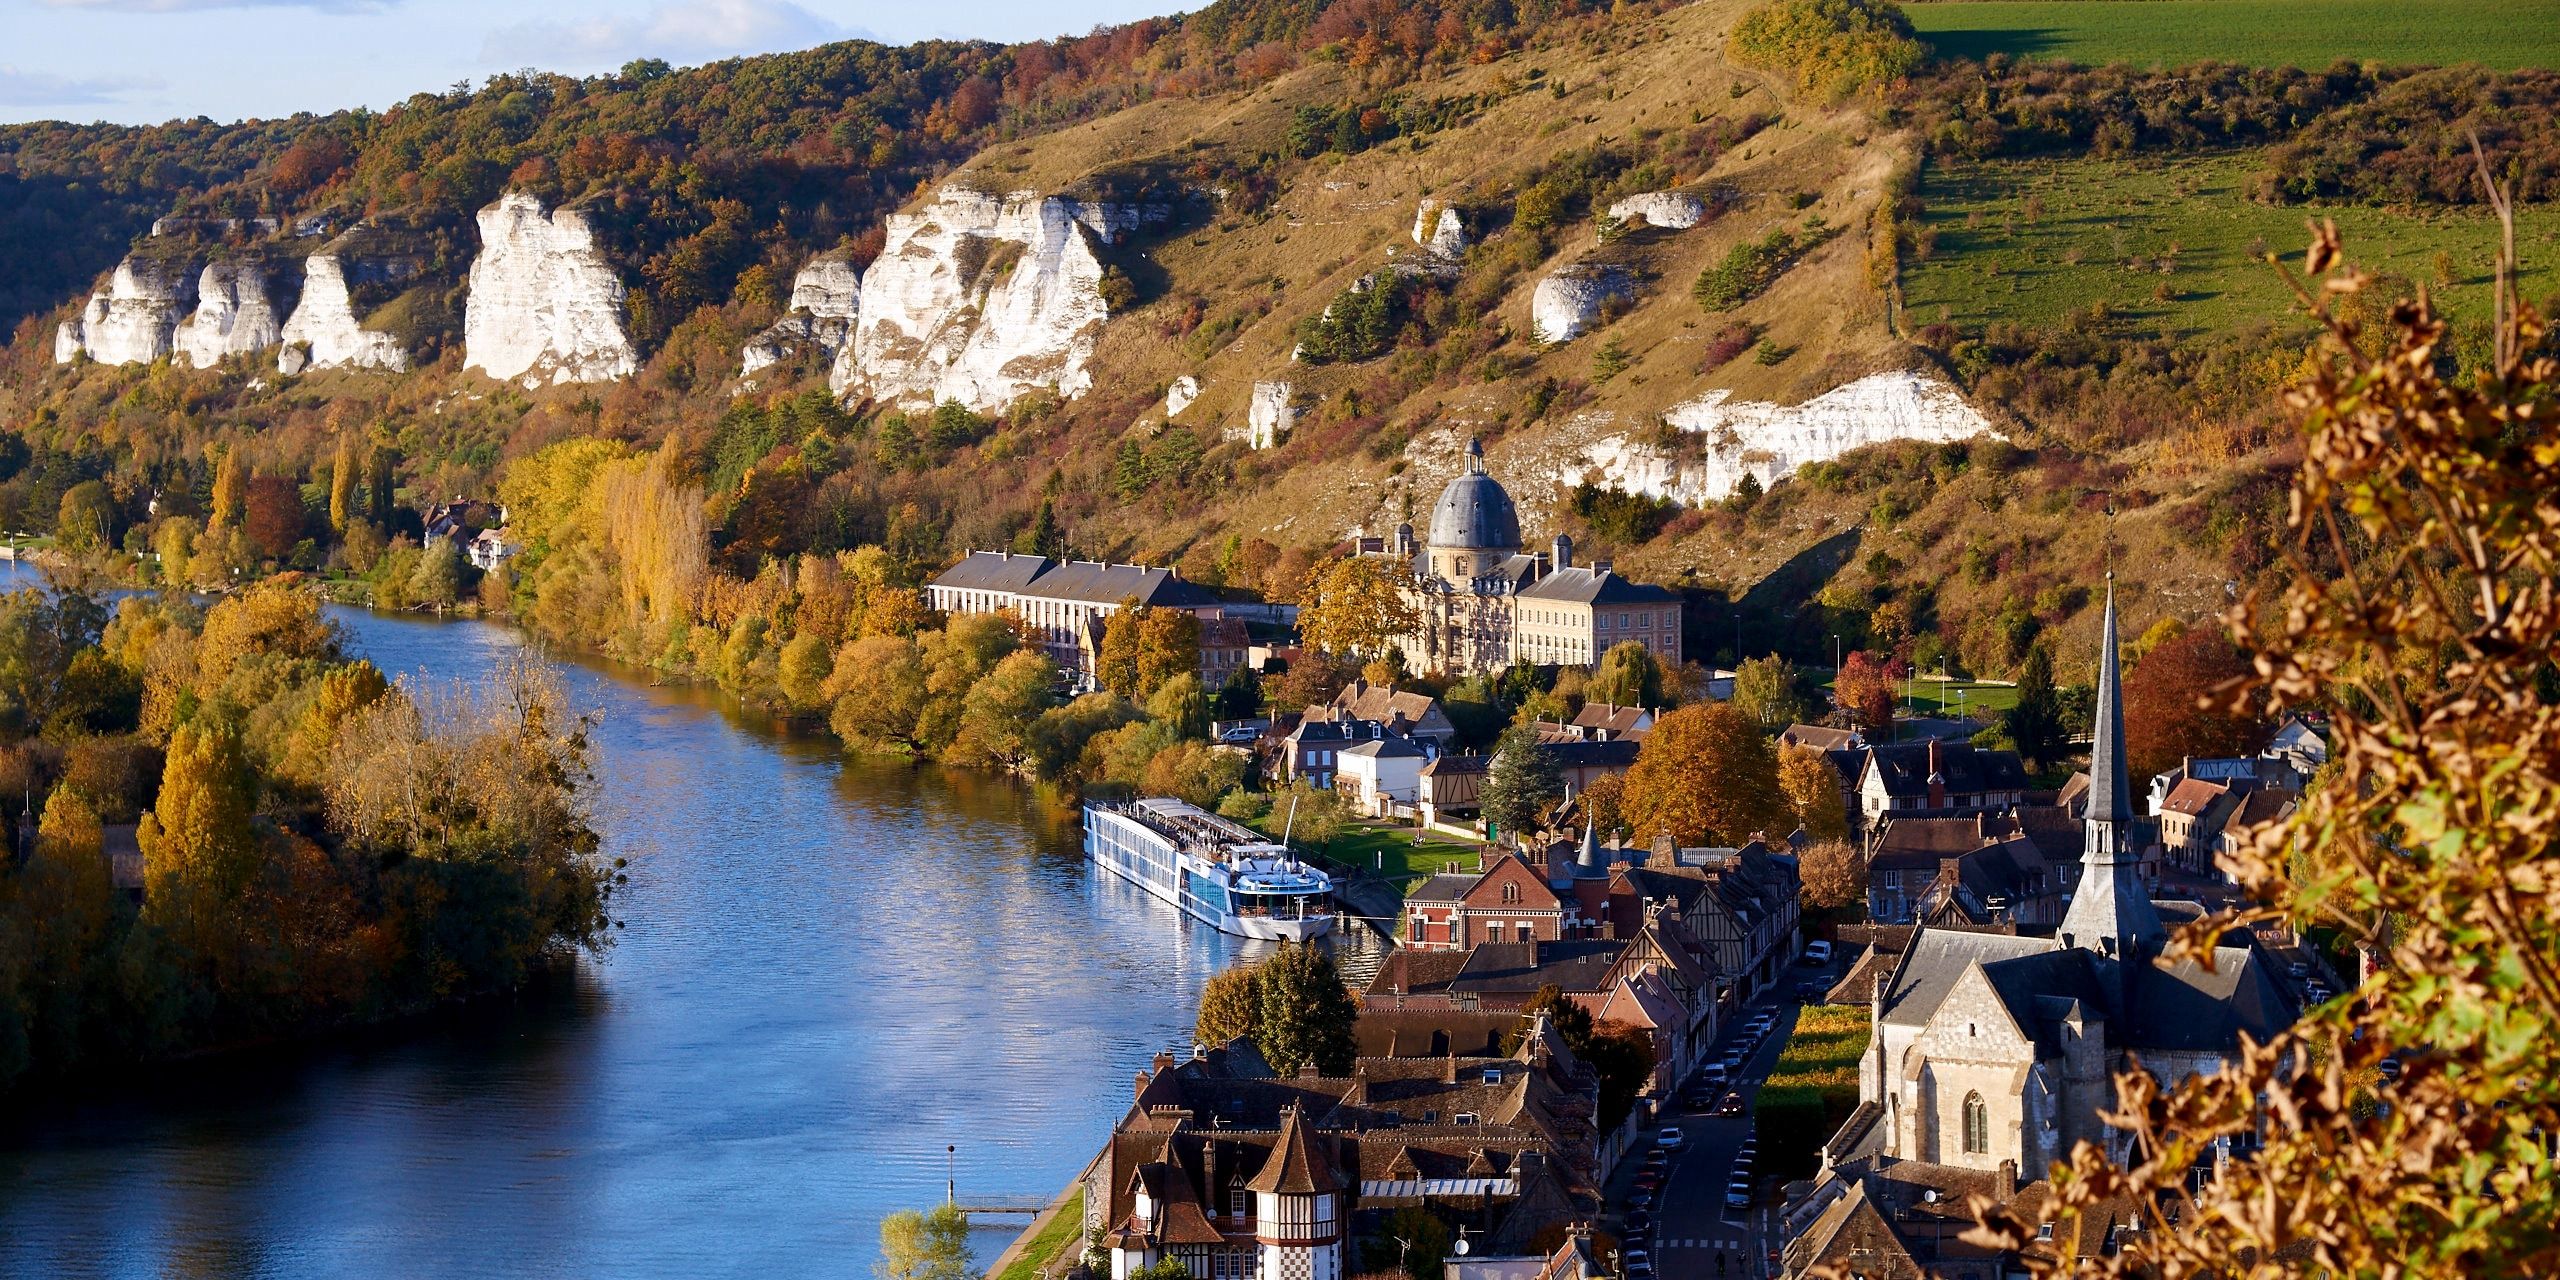 White cliffs line the hillside of Rouen, France along the Seine River